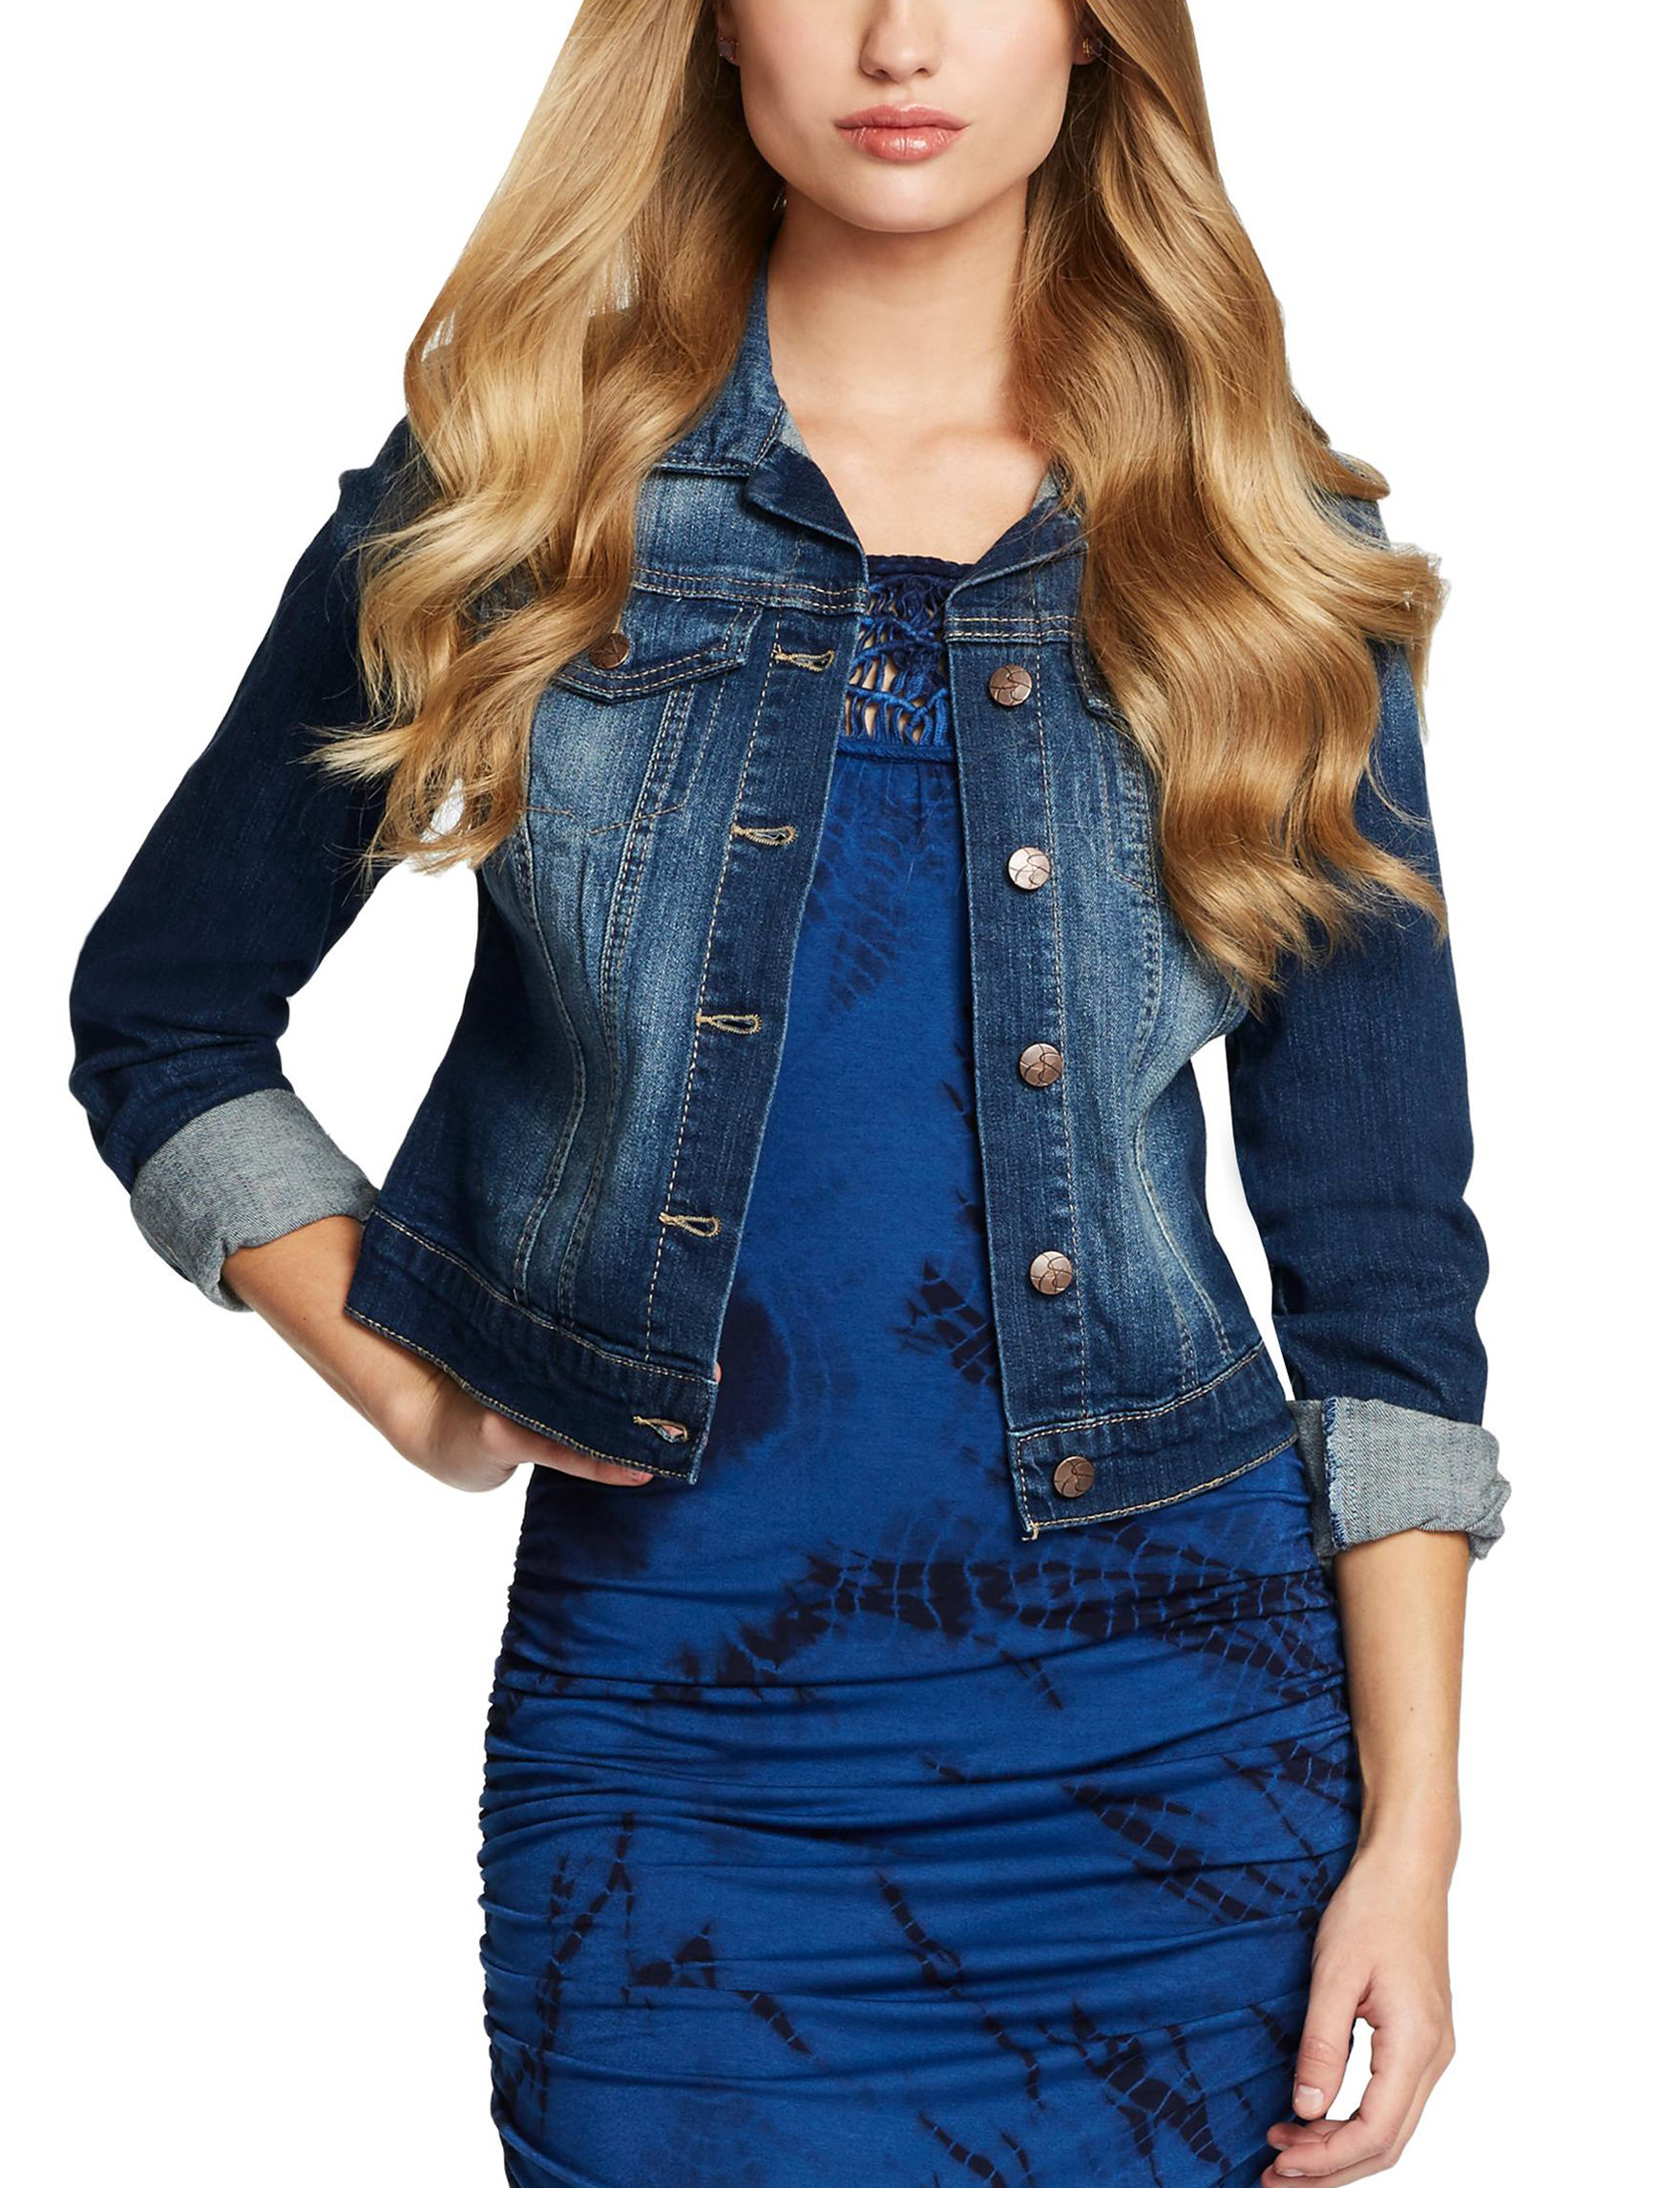 Jessica Simpson Blue Lightweight Jackets & Blazers